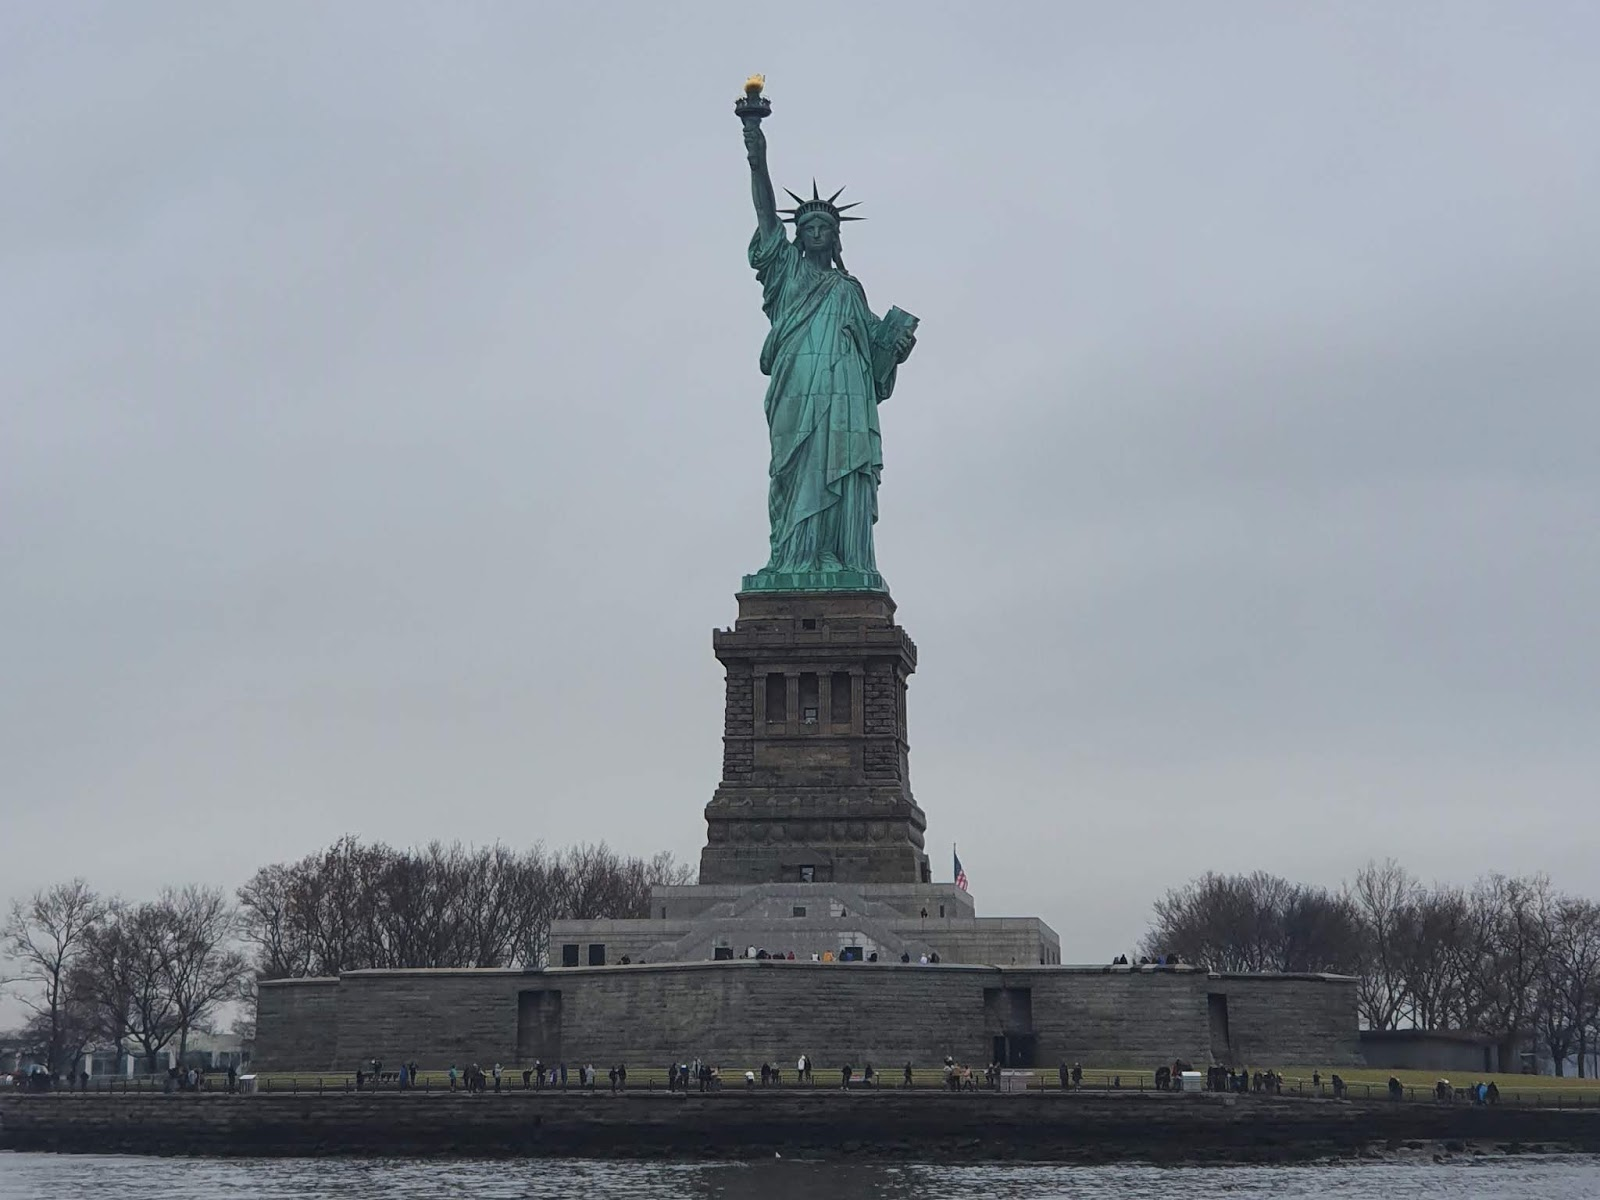 NYC: Ellis Island and the Statue of Liberty